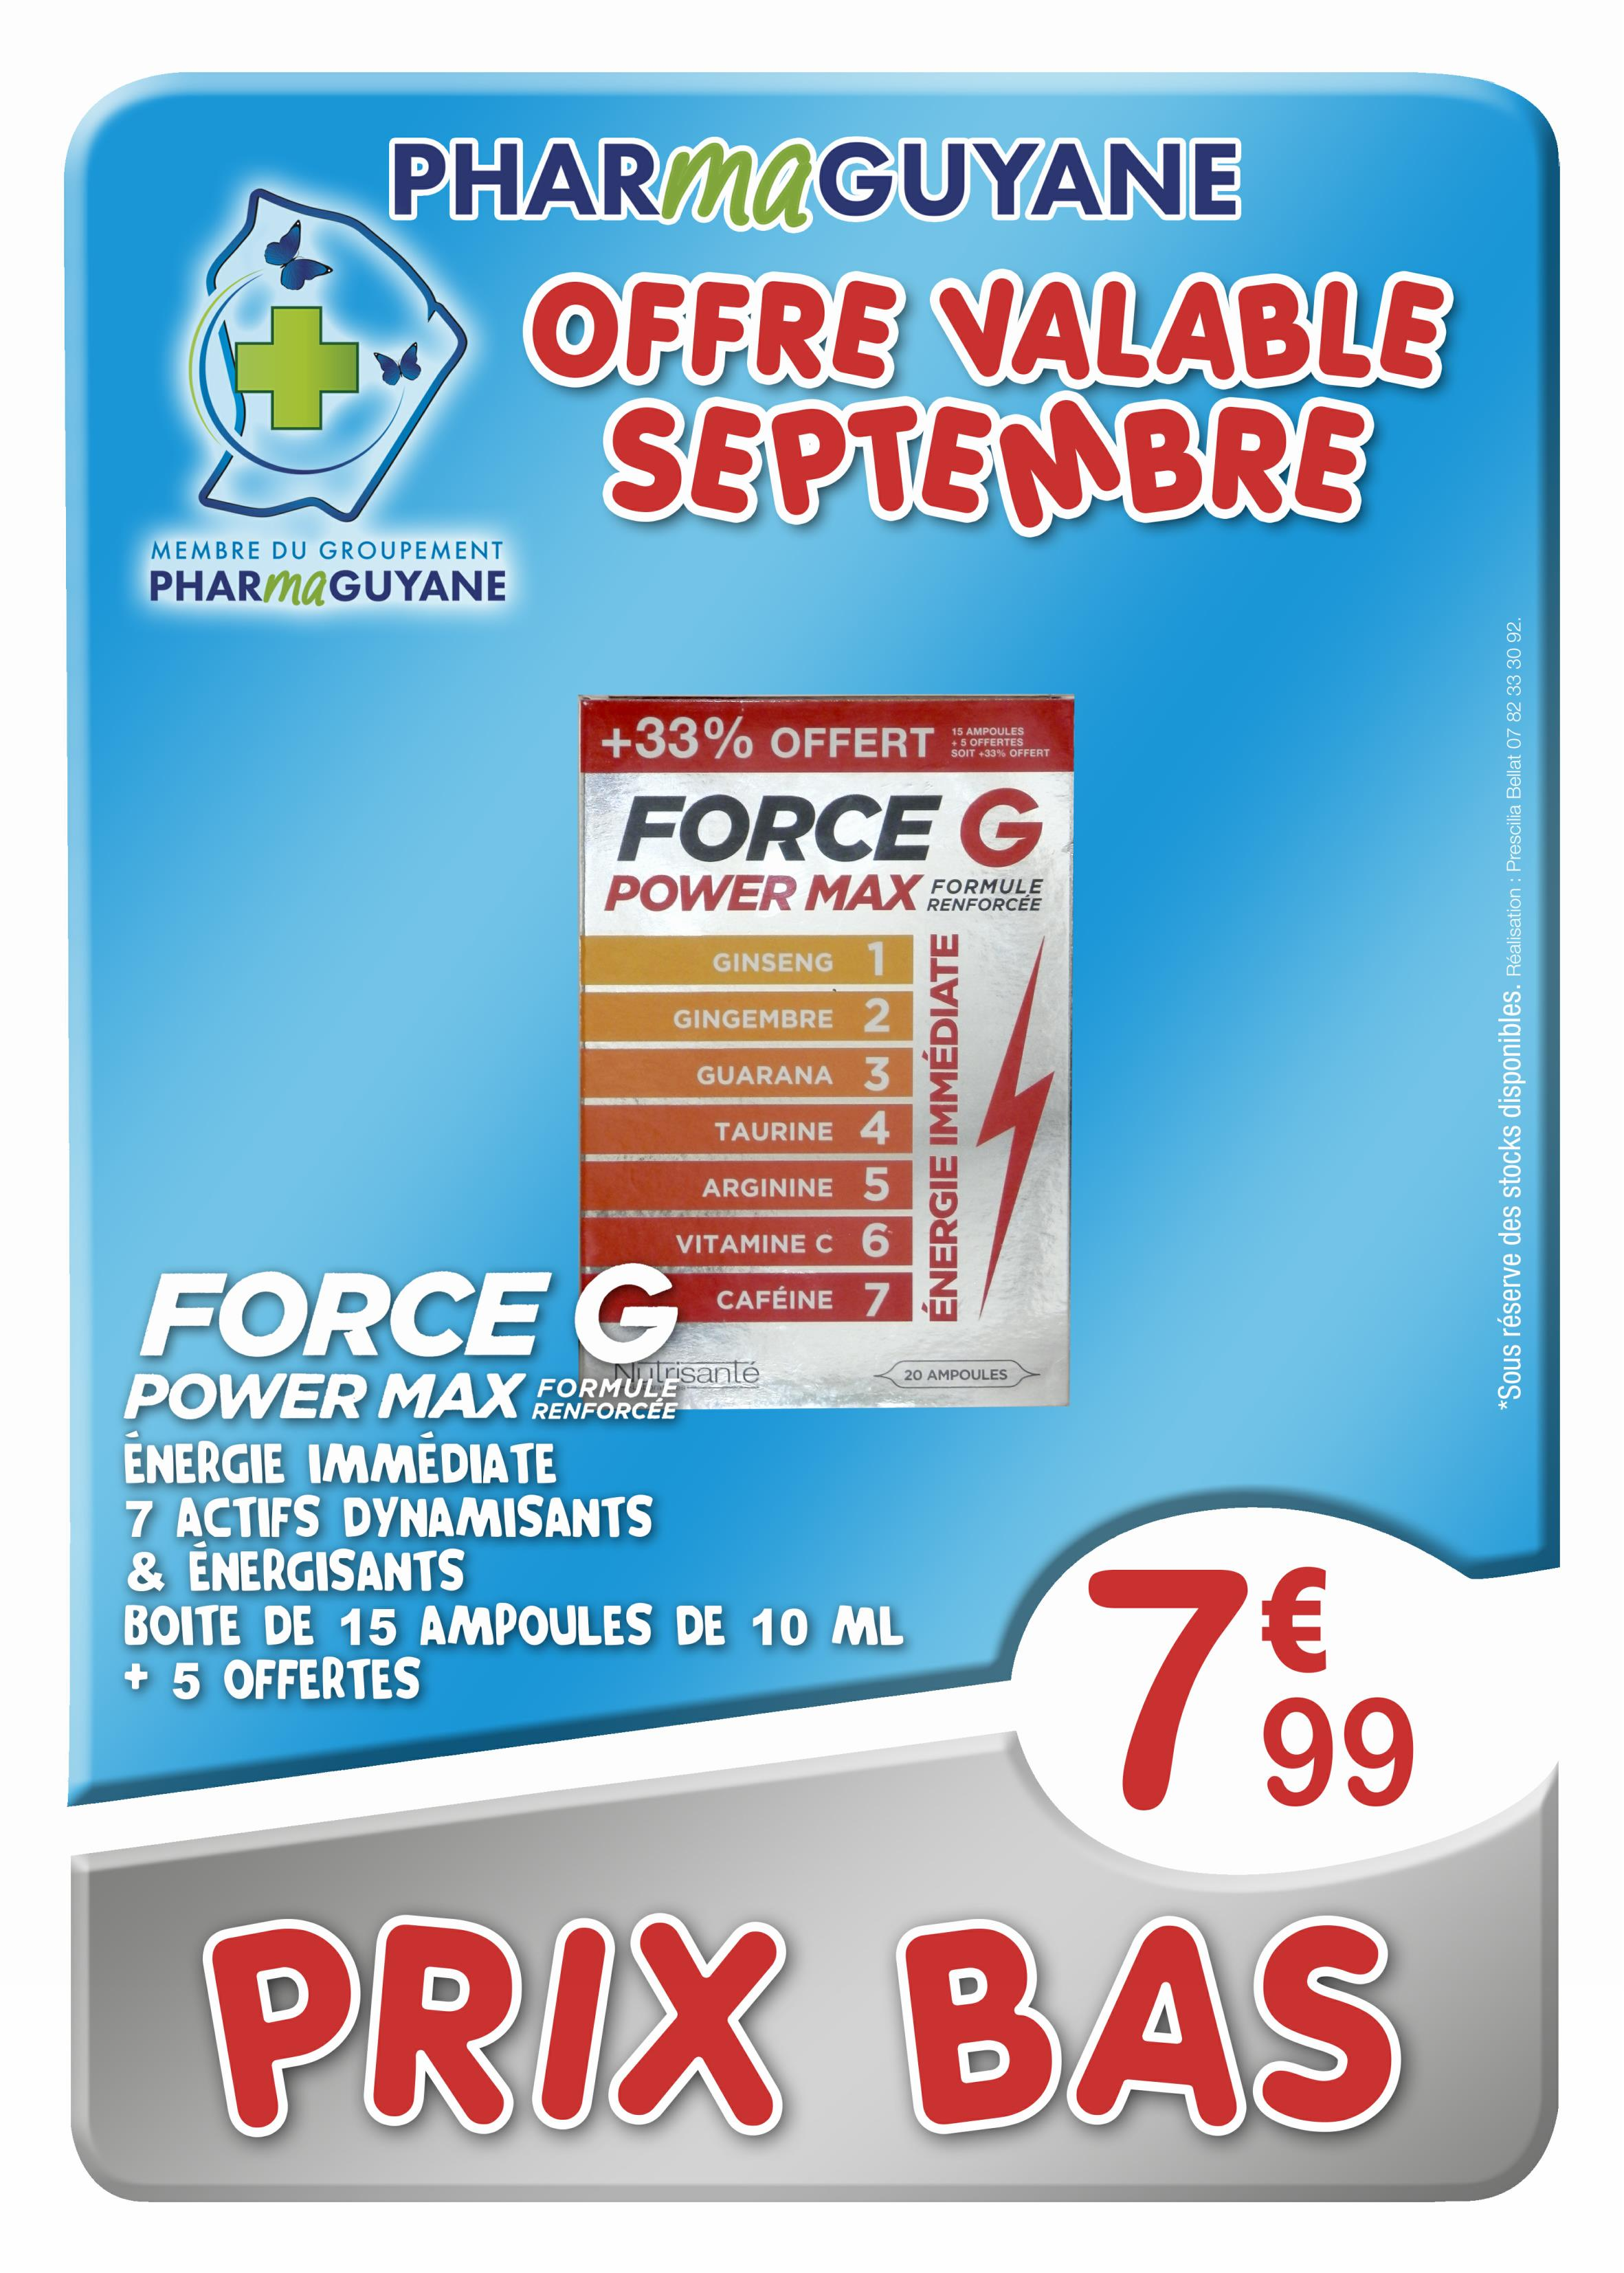 FORCE G Power Max 20 ampoules